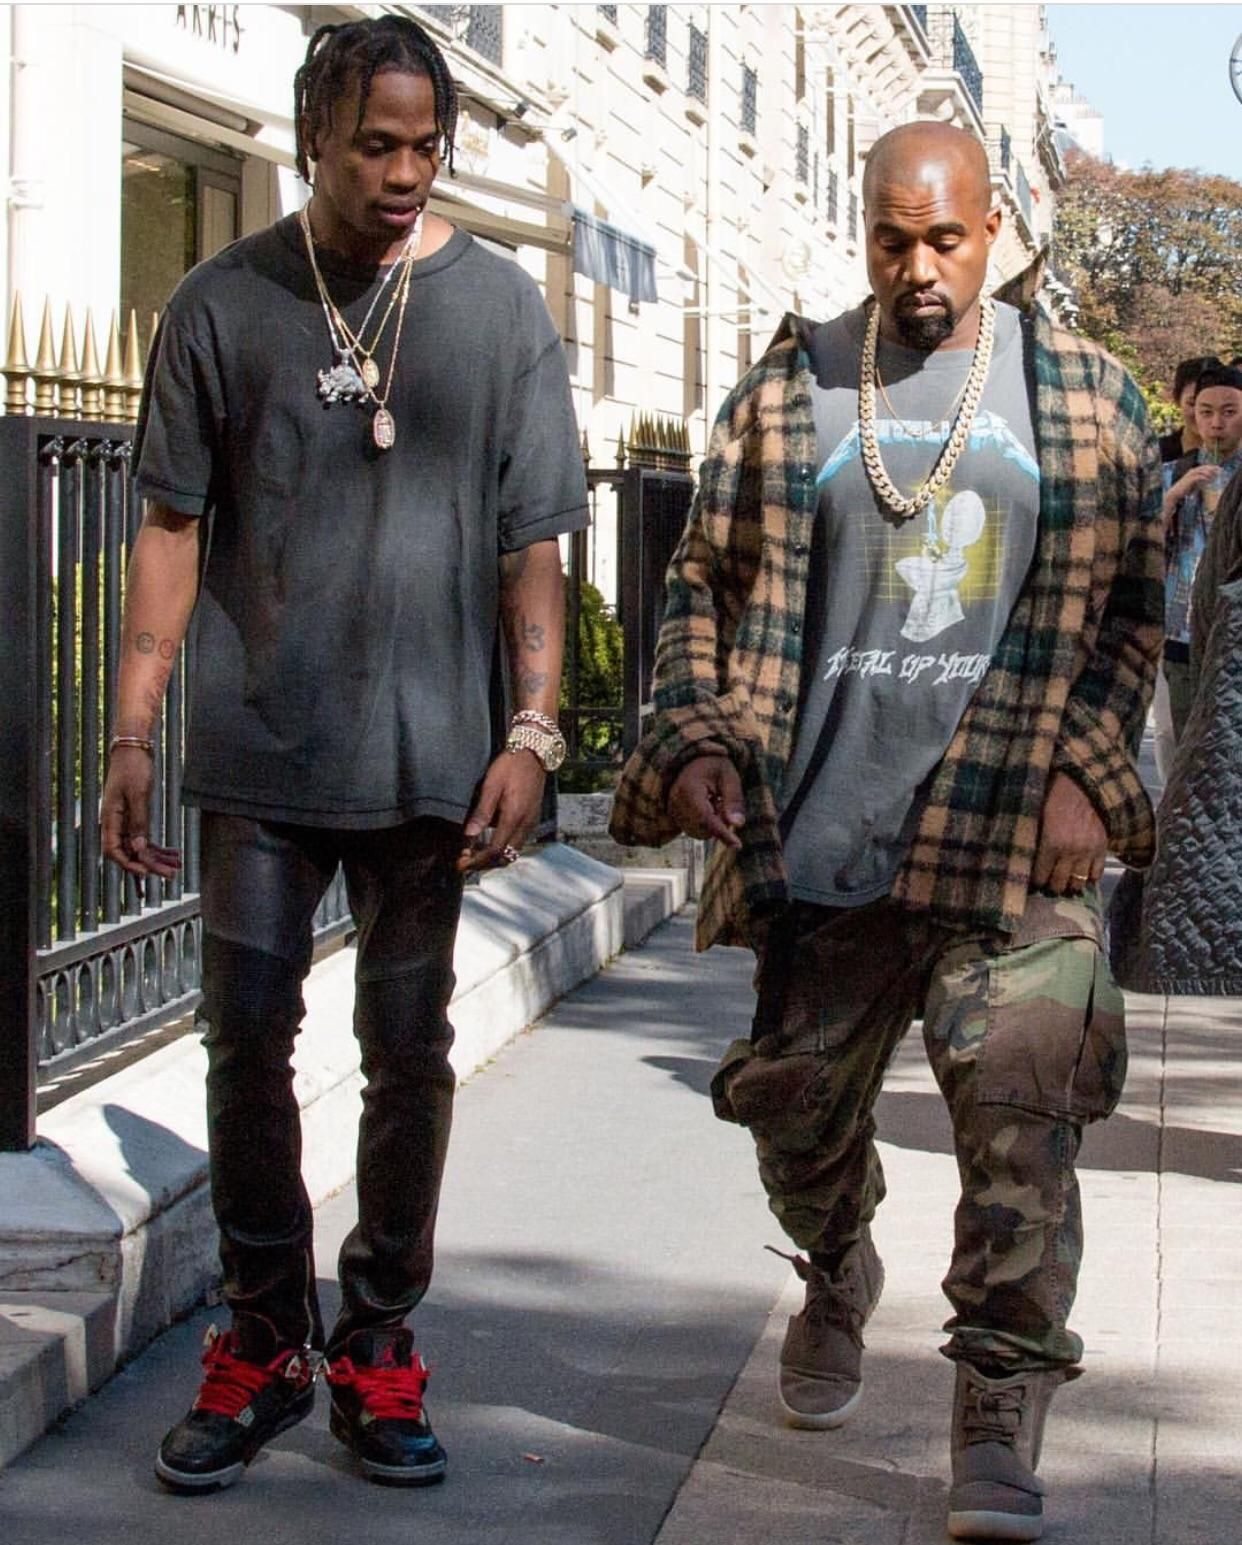 83357842a Pin by Djordje Mijailovic on Kanye in 2019 | Kanye west style ...